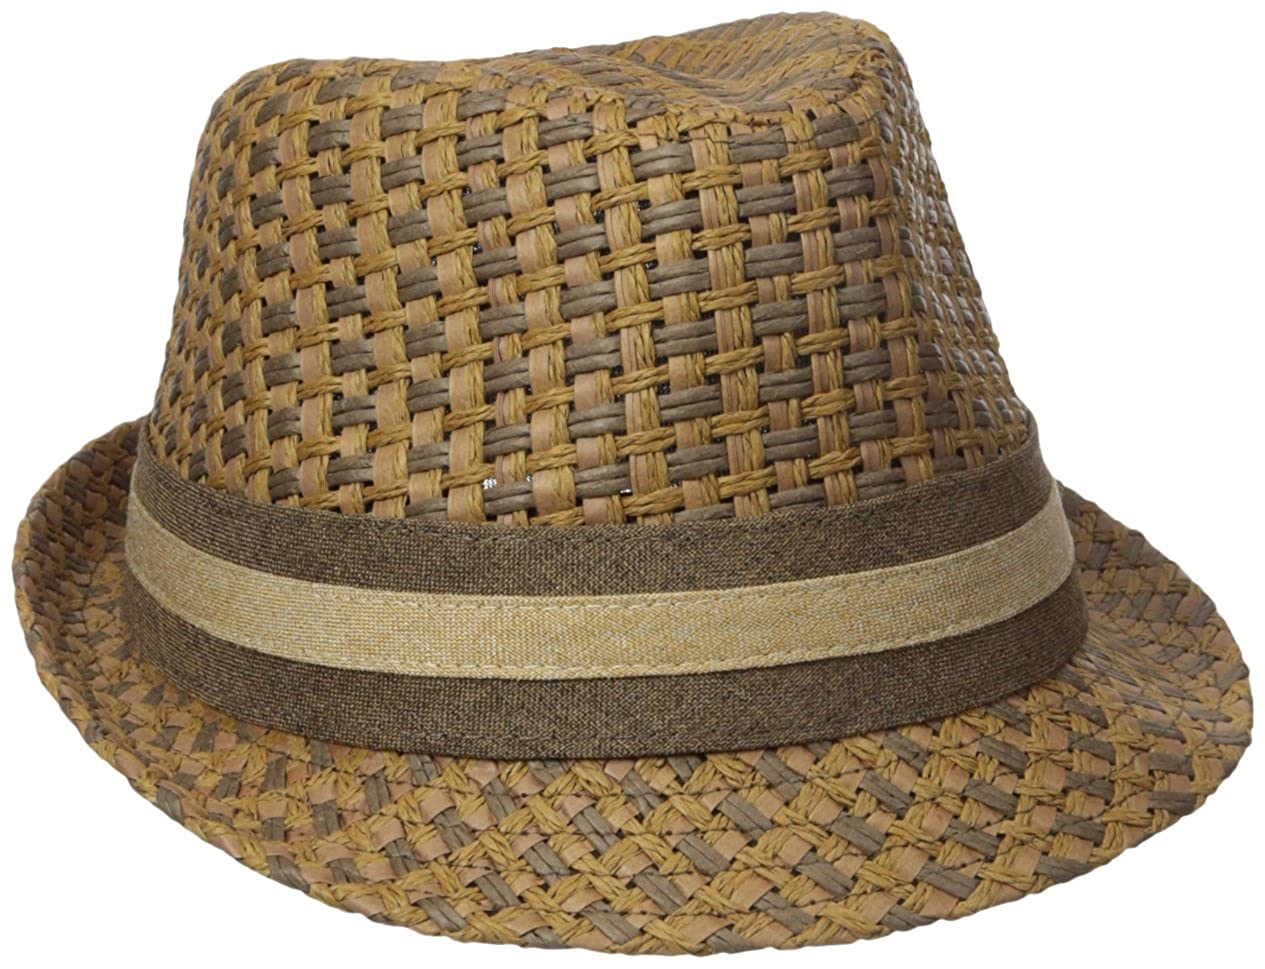 9c3111befb696 Henschel Men s Paper Straw Fedora with Two Tone Band at Amazon Men s  Clothing store